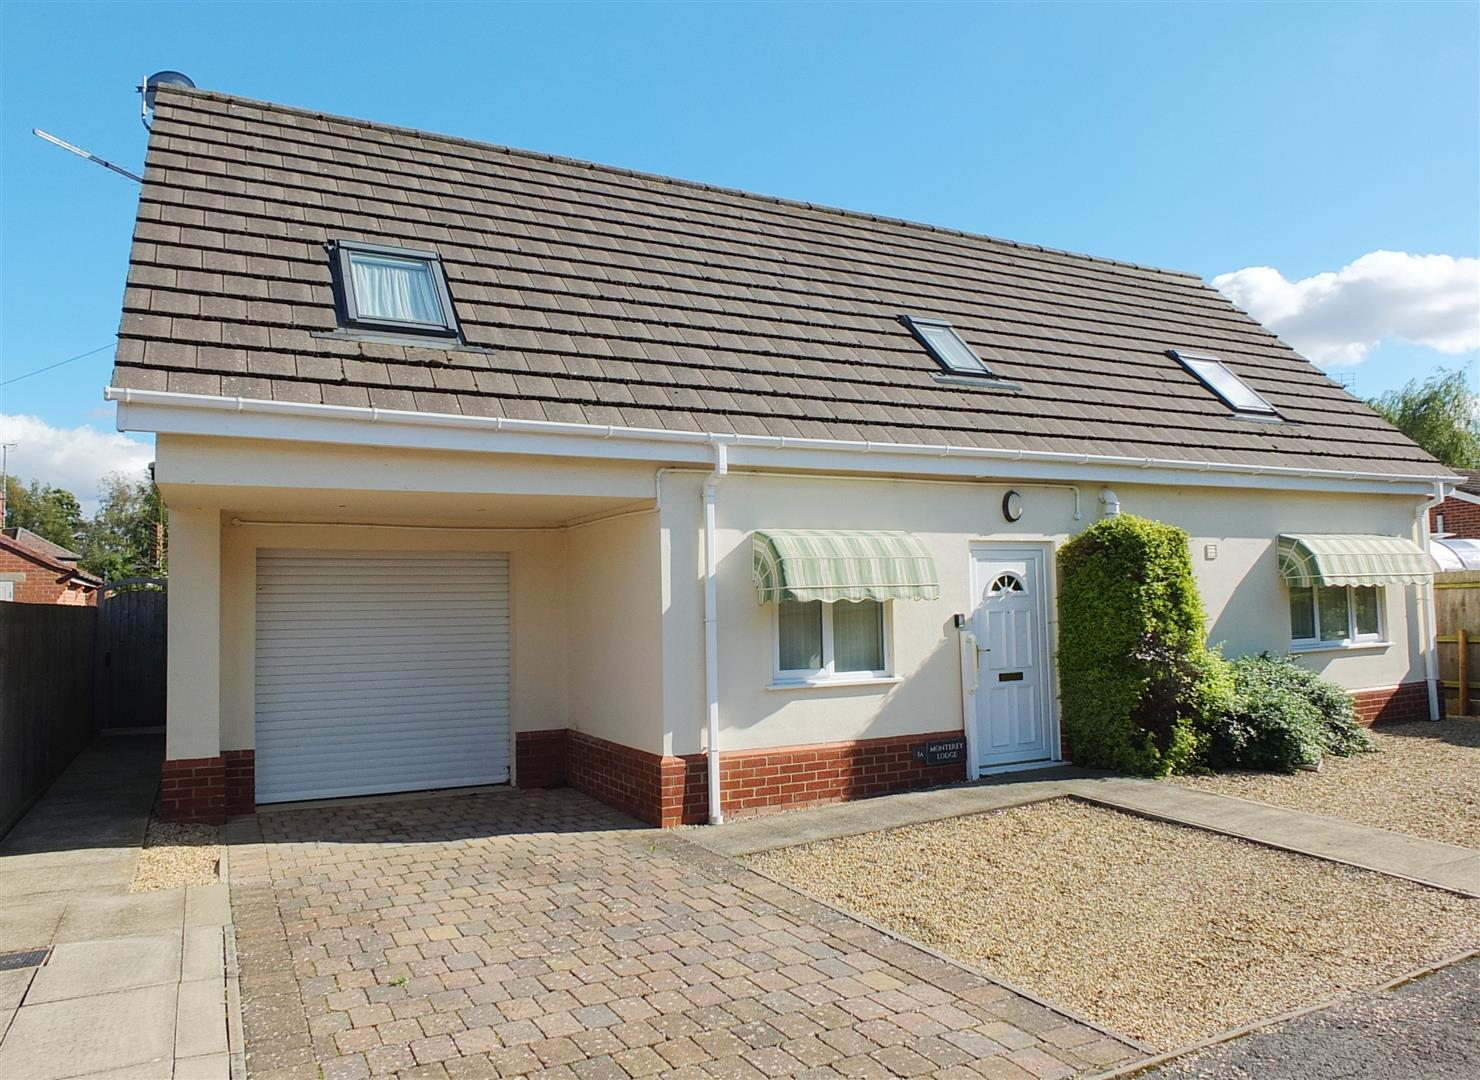 3 bed detached bungalow for sale in Long Sutton Spalding, PE12 9EP - Property Image 1